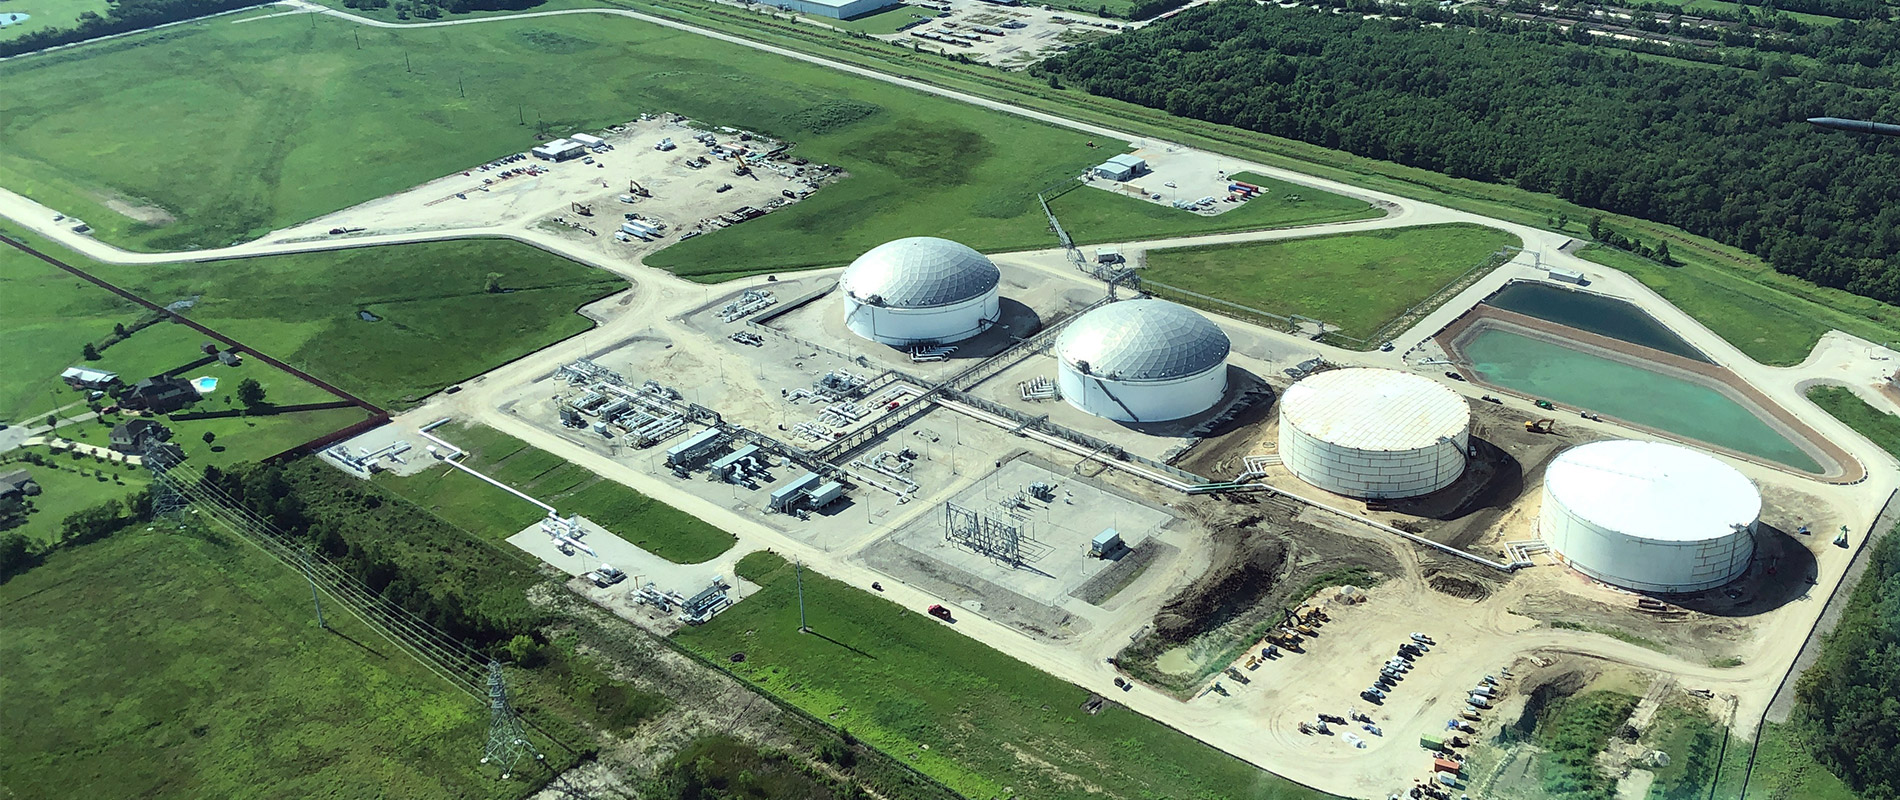 tc-houston-4-tanks-storage-expansion-1900x800.jpg